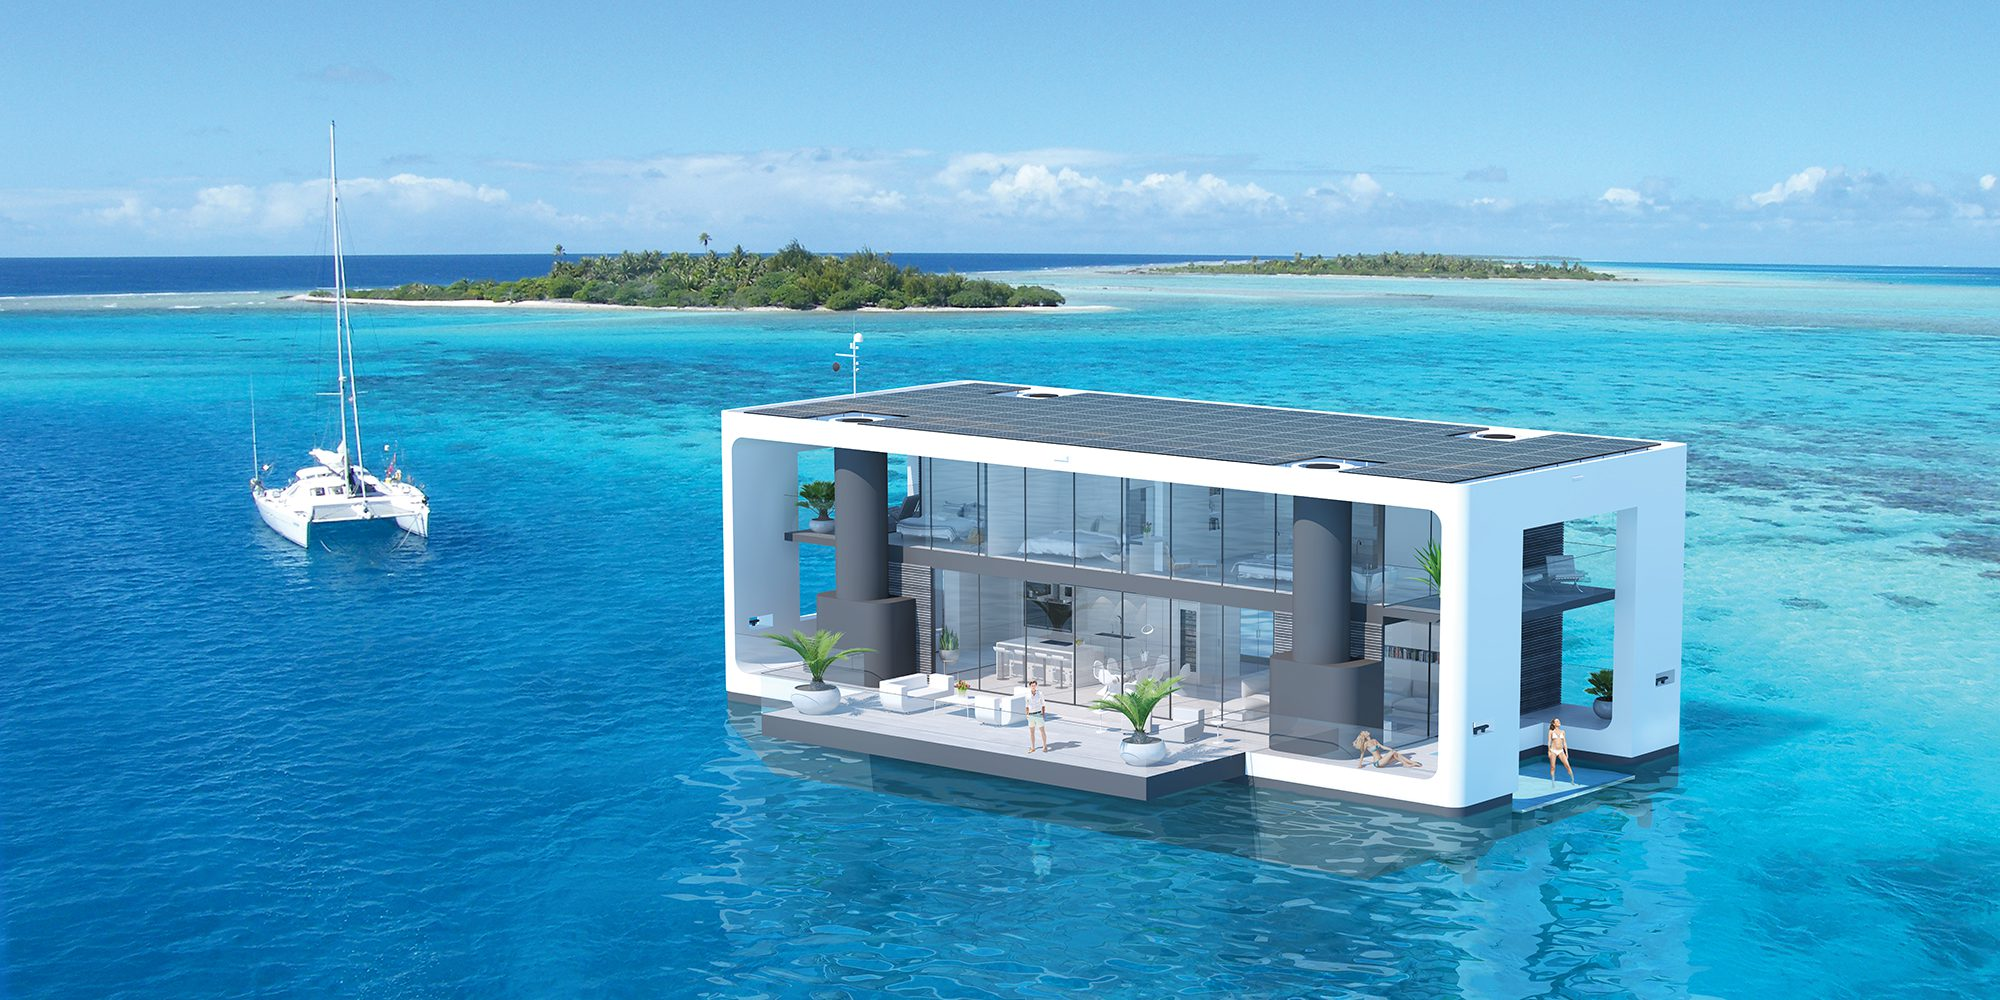 Solar And Battery Technology Power A Novel Hurricane Resistant Floating  Electric House Boat